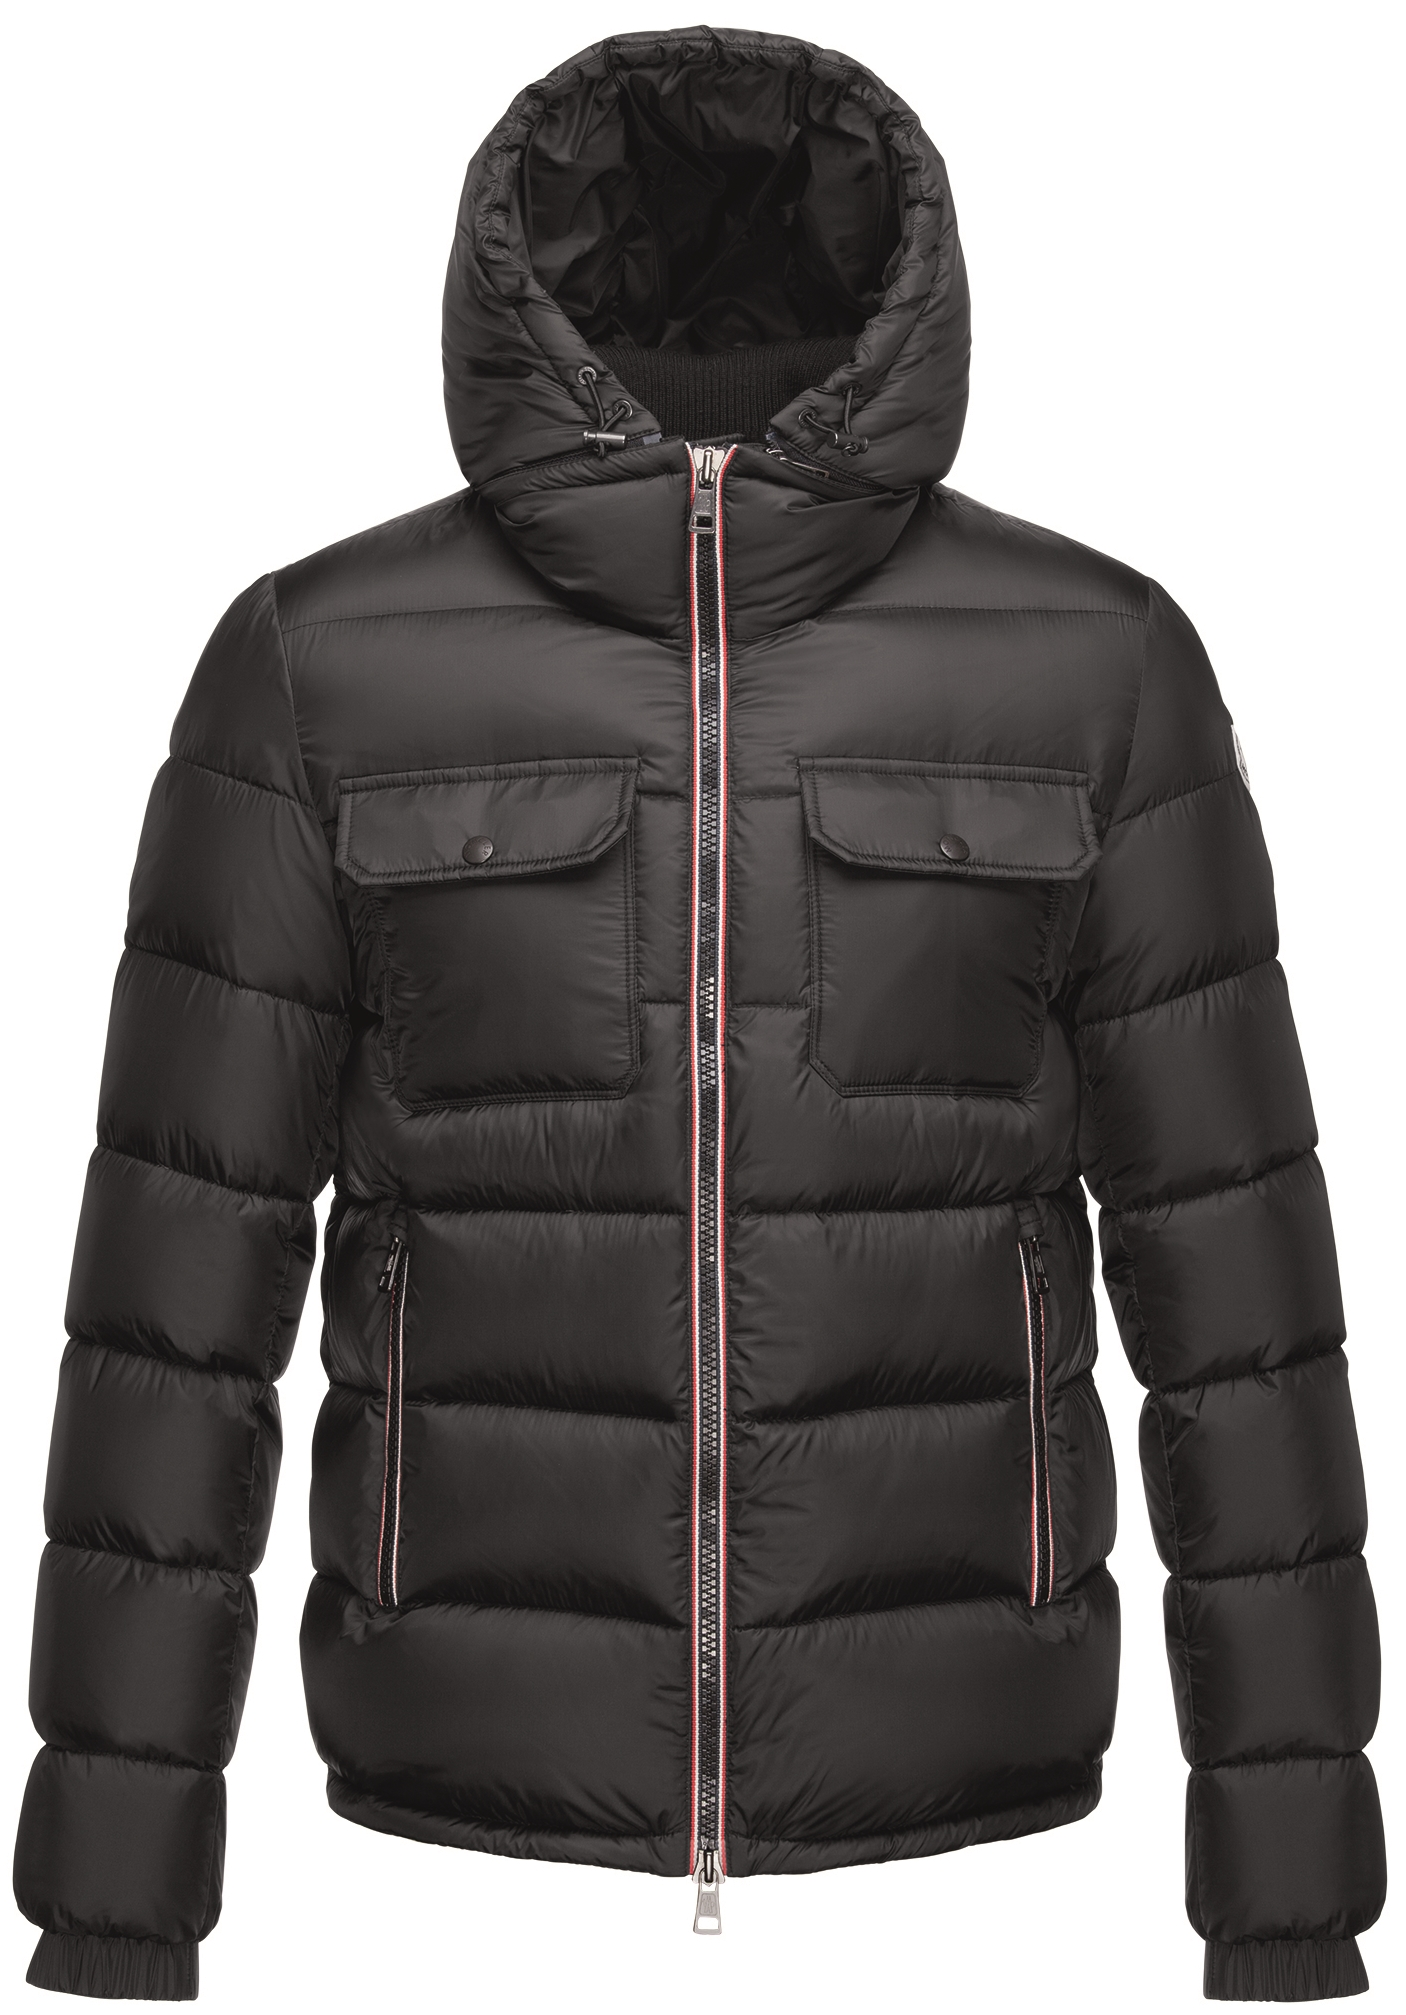 Moncler Demar Quilted Puffer Jacket, $1,335